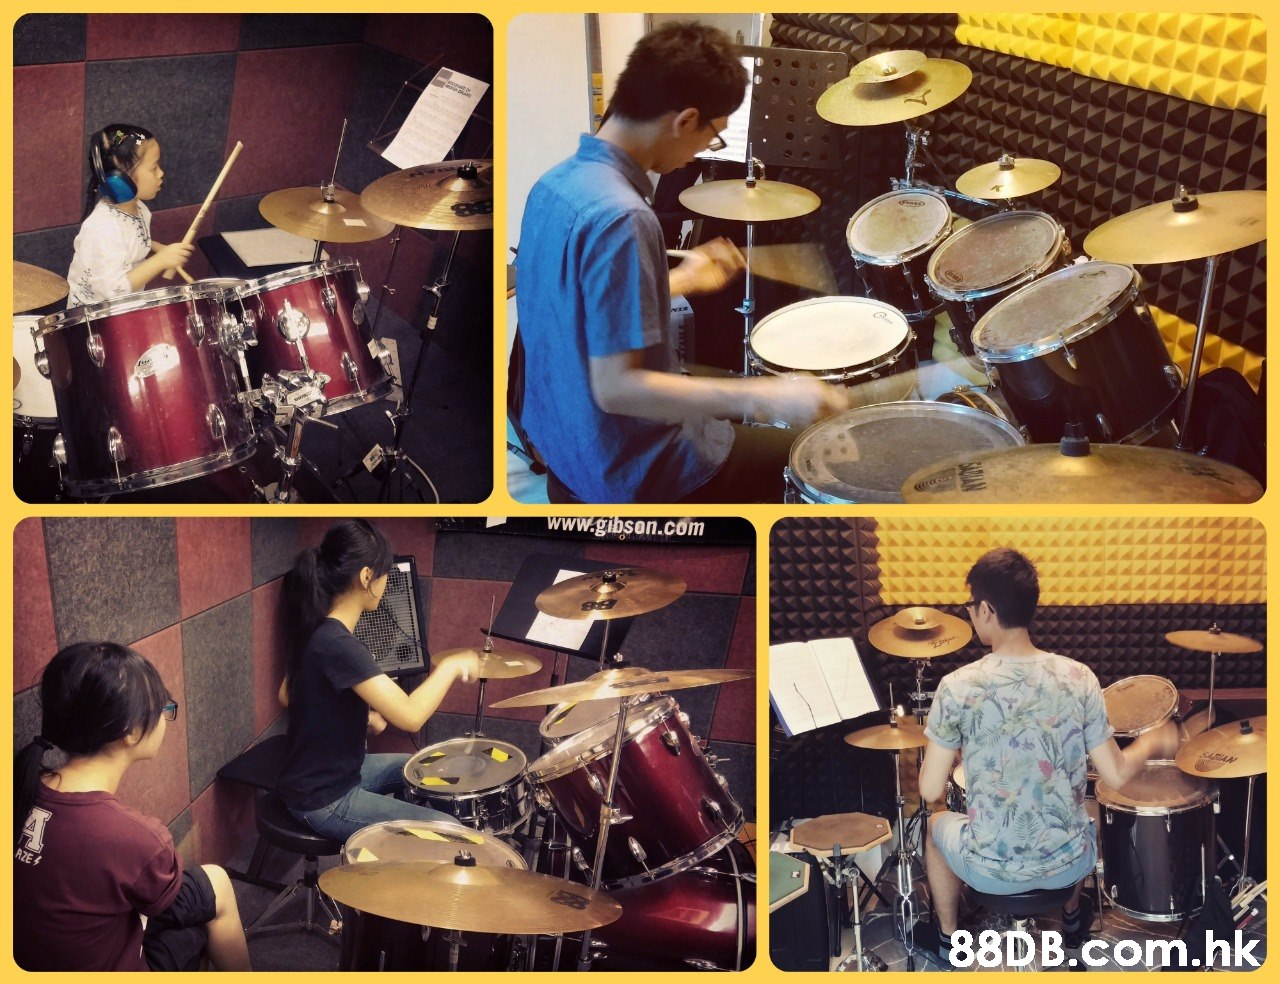 www.gibson.com AZE& .hk  Drum,Drums,Drummer,Musical instrument,Percussionist